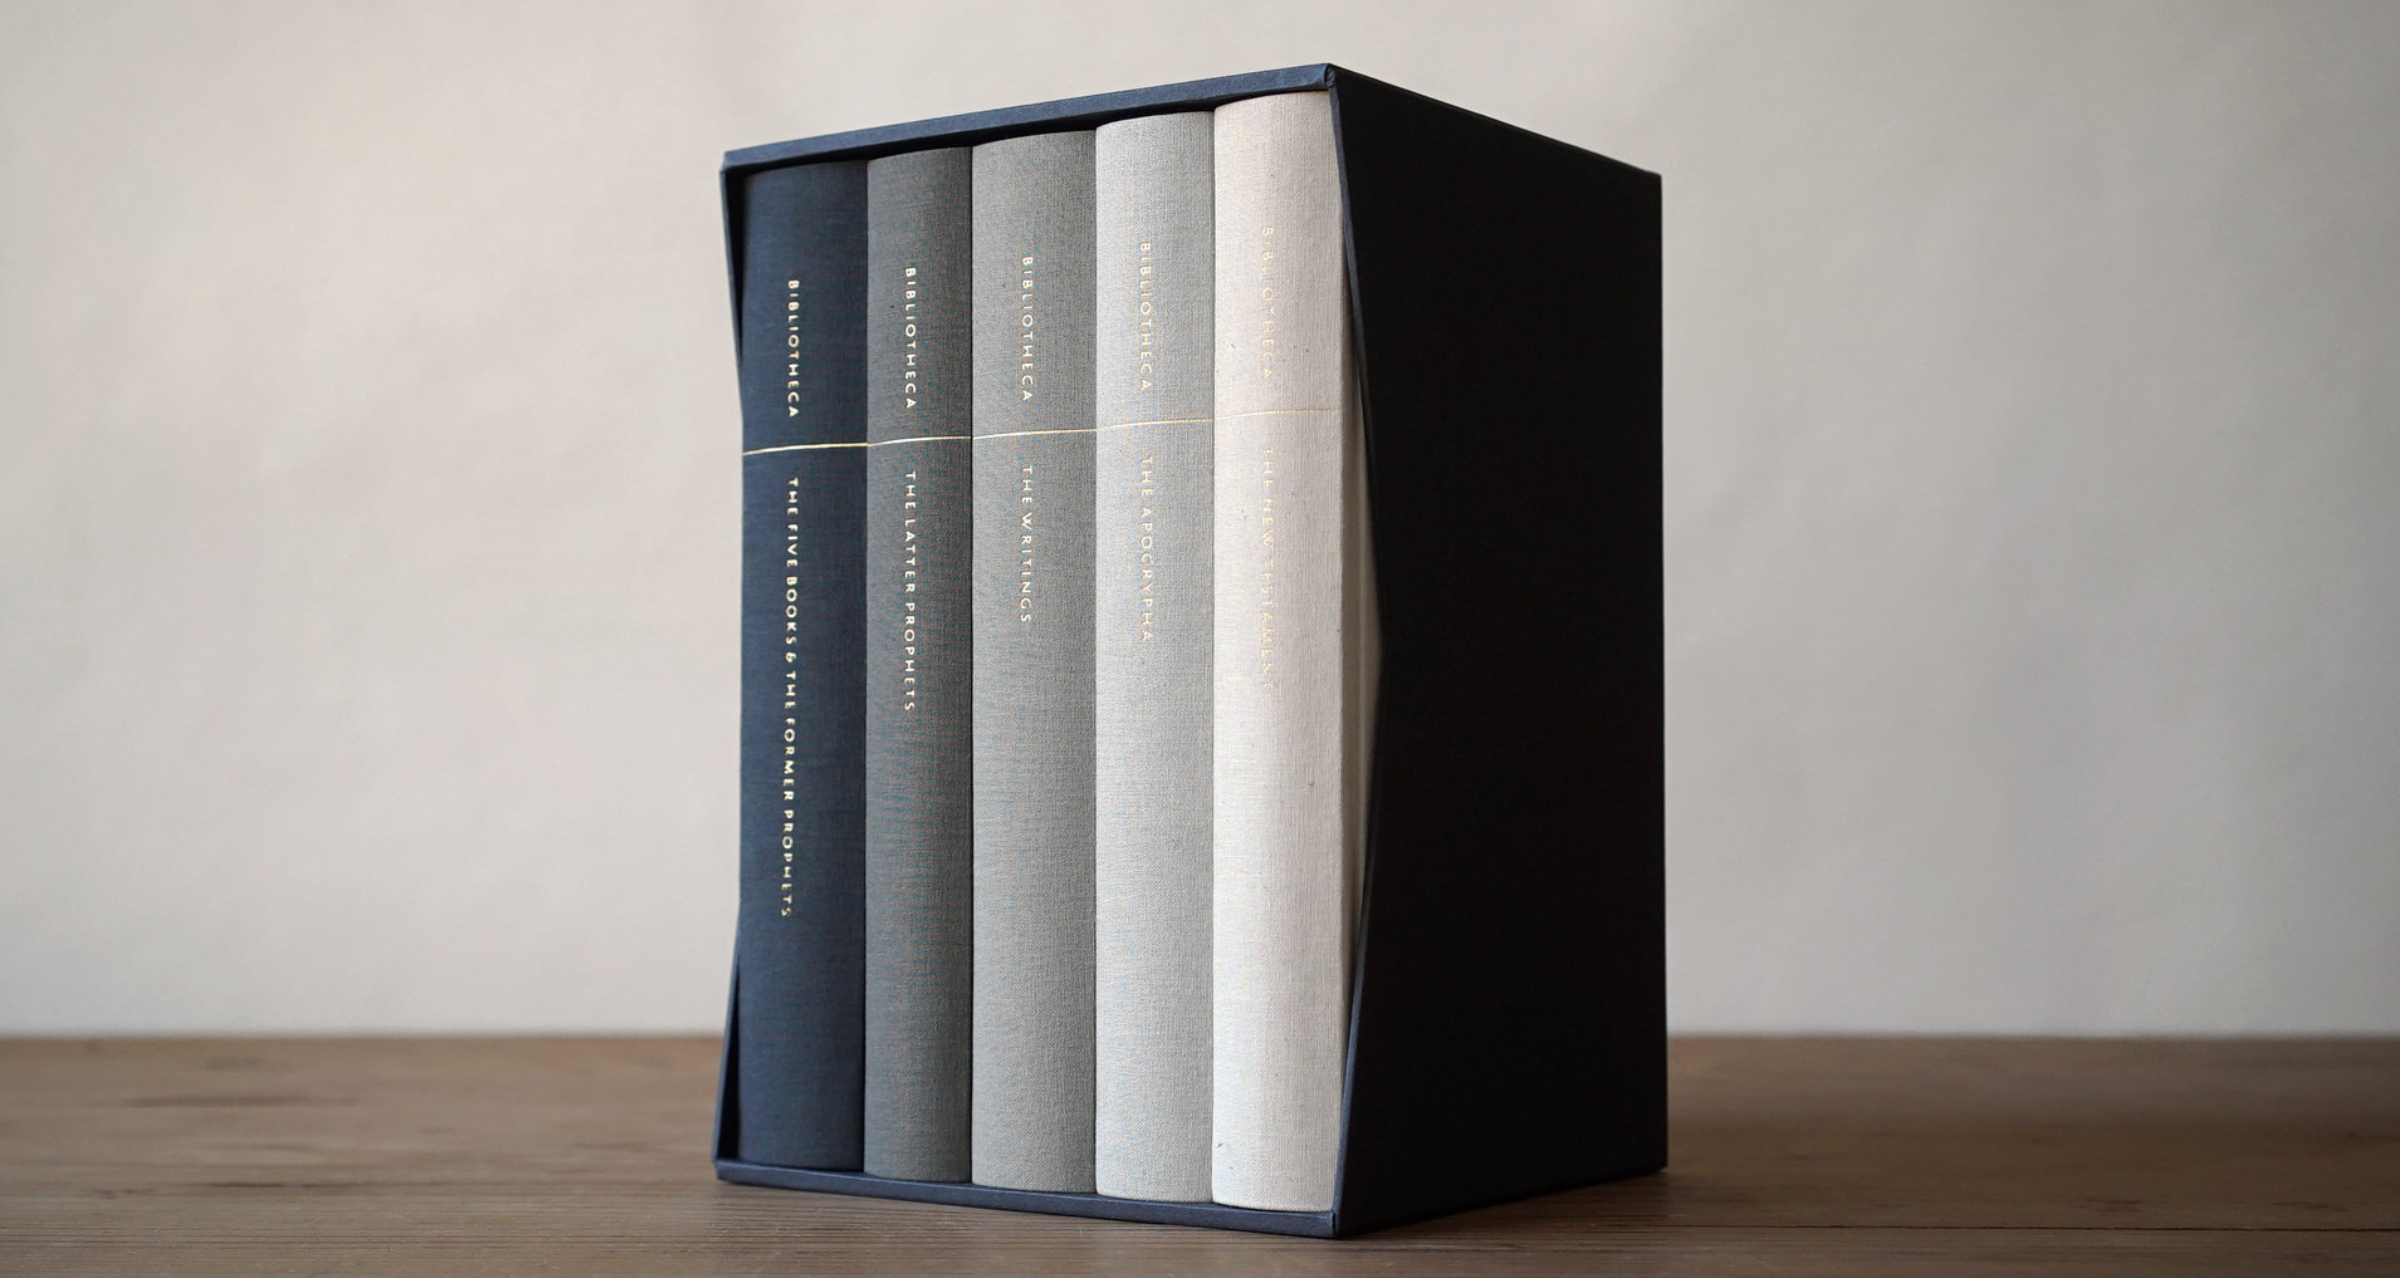 The completed Bibliotheca set. Shipping early December 2016.